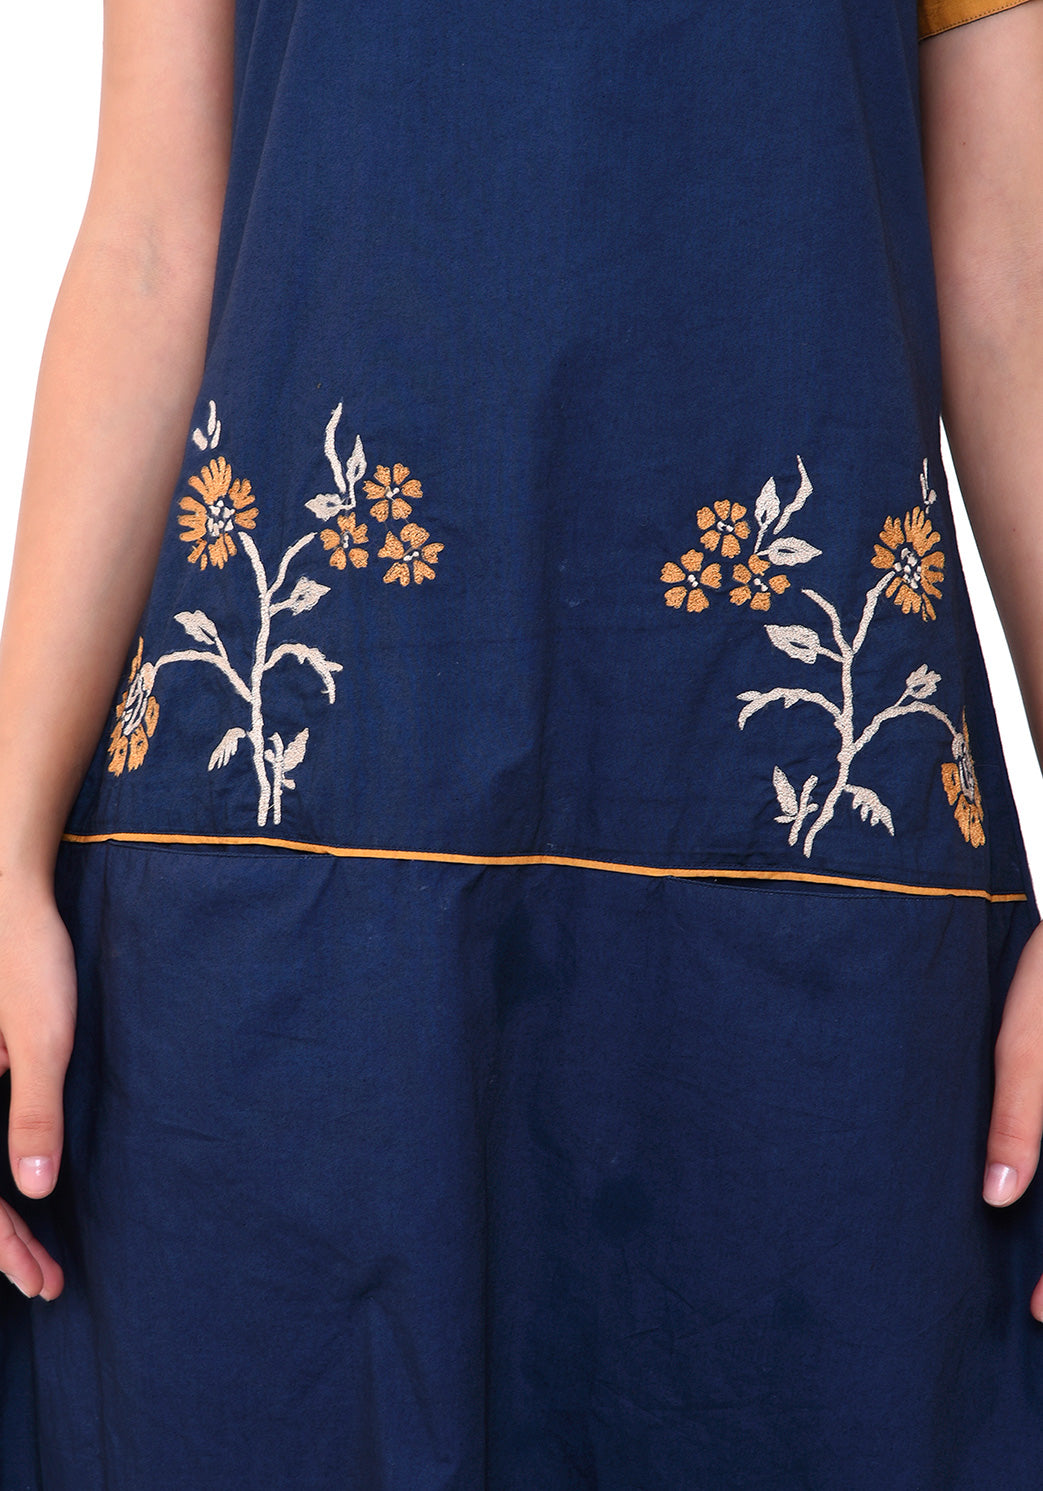 Floral Embroidered Front Pocket Dress - Navy Blue